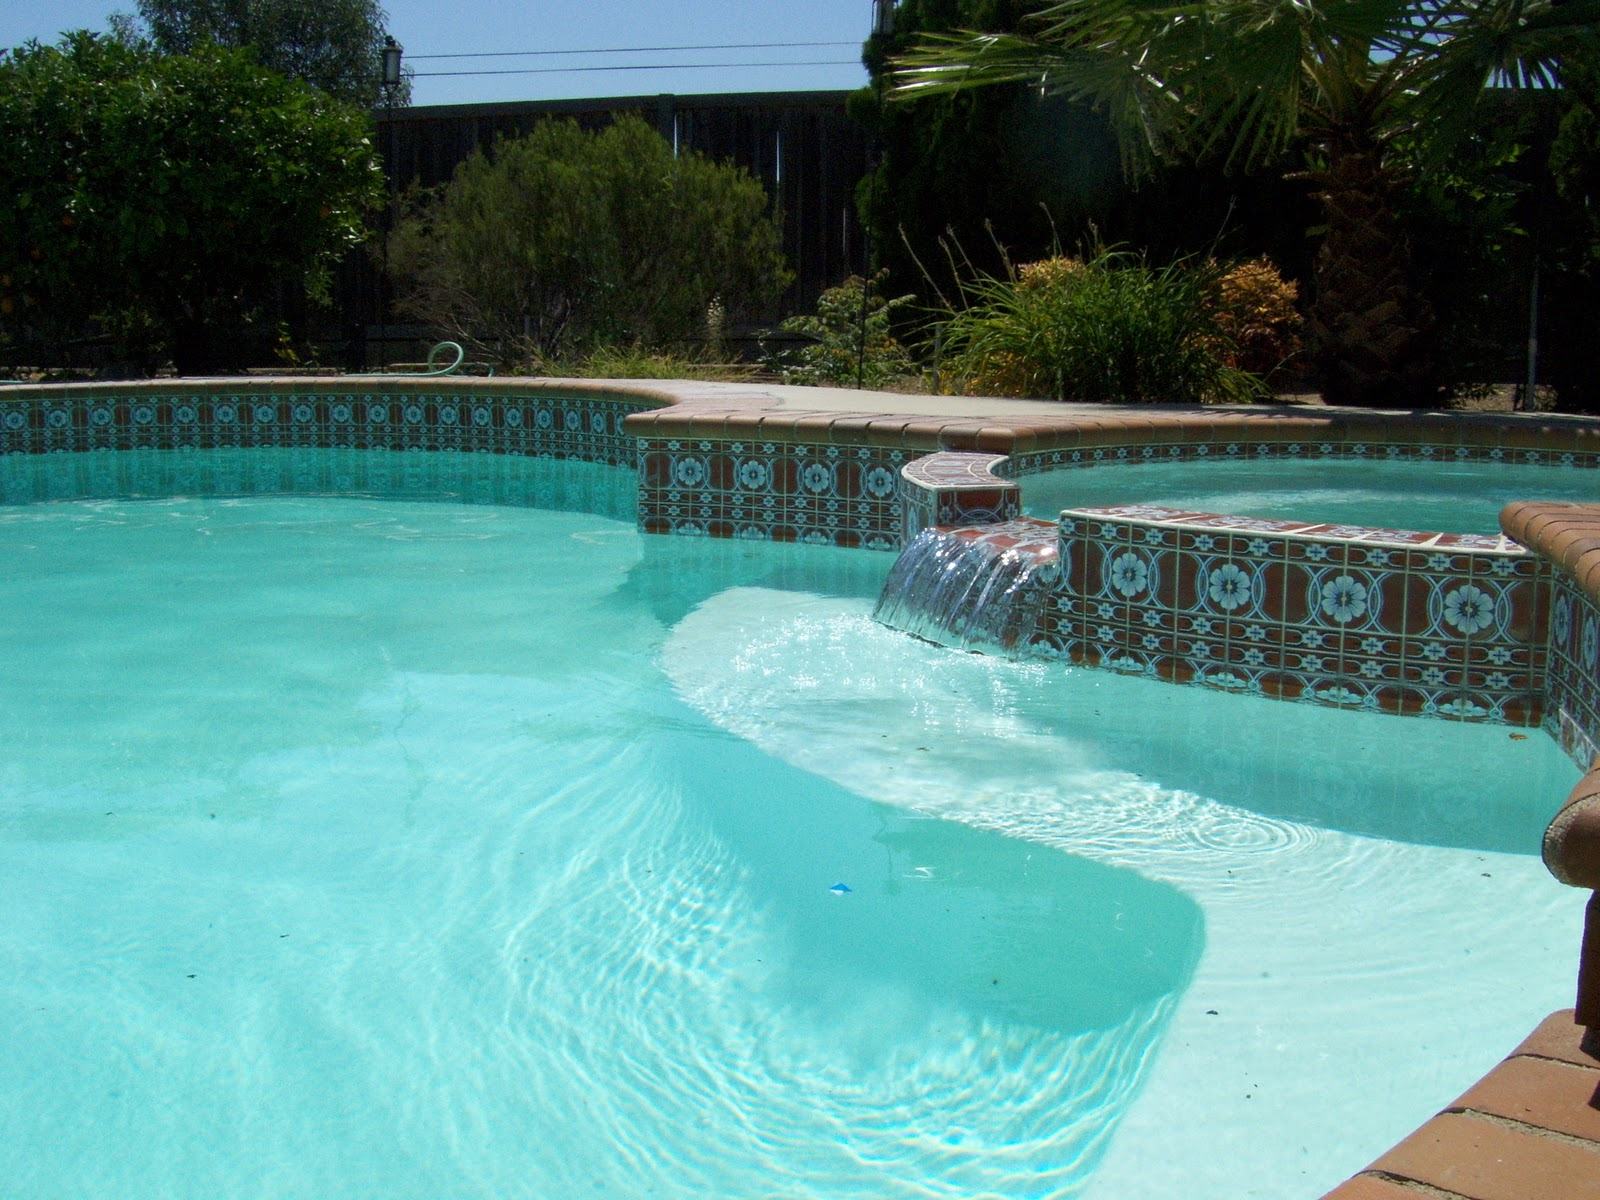 Pool Tile Cleaning Pro 877 835 8763 Orange County Los Angeles Riverside Palm Springs Pool Tile